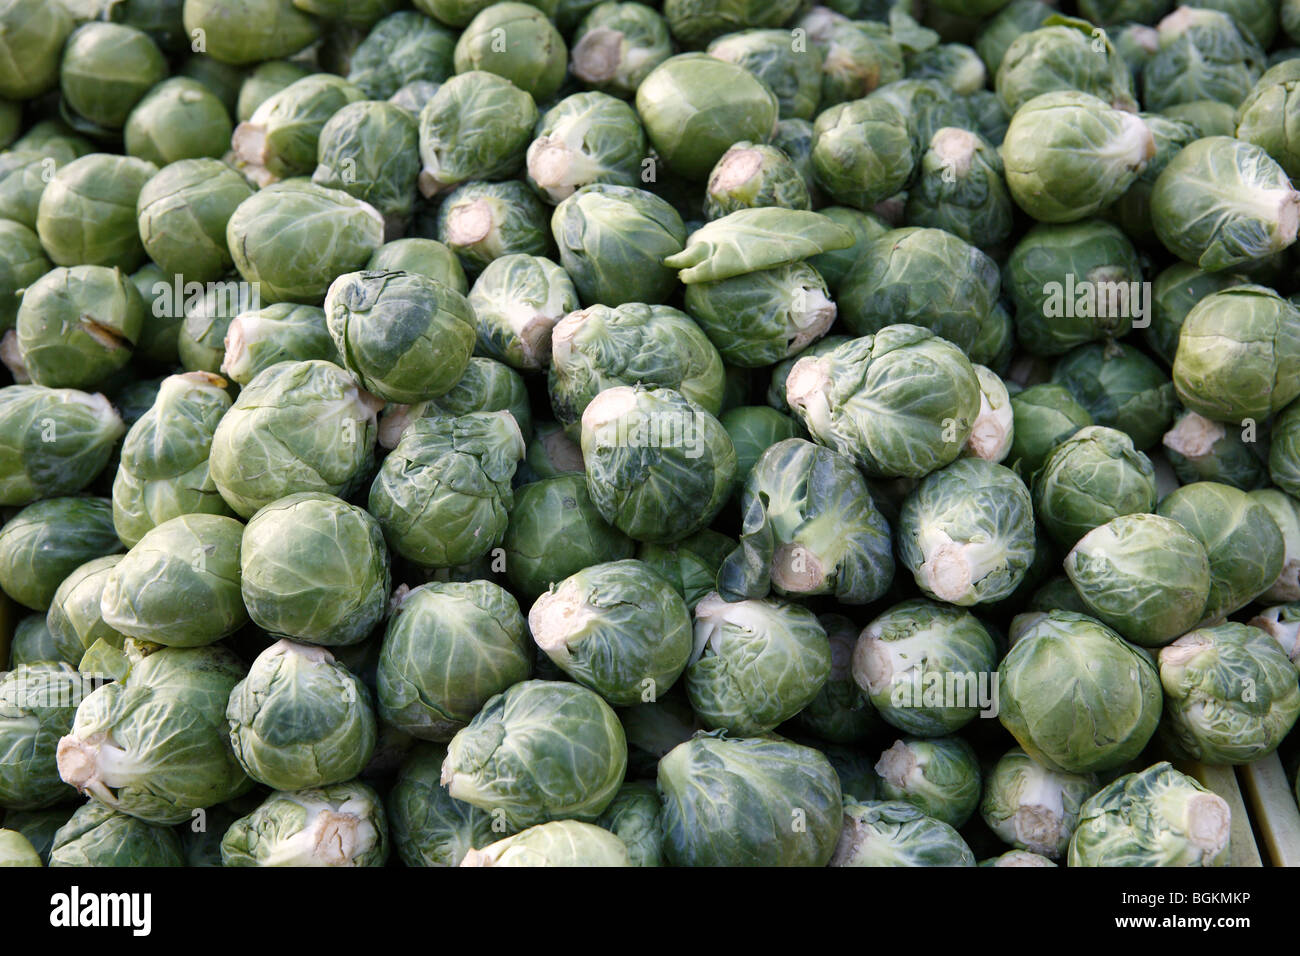 Brussels sprouts for sale - Stock Image